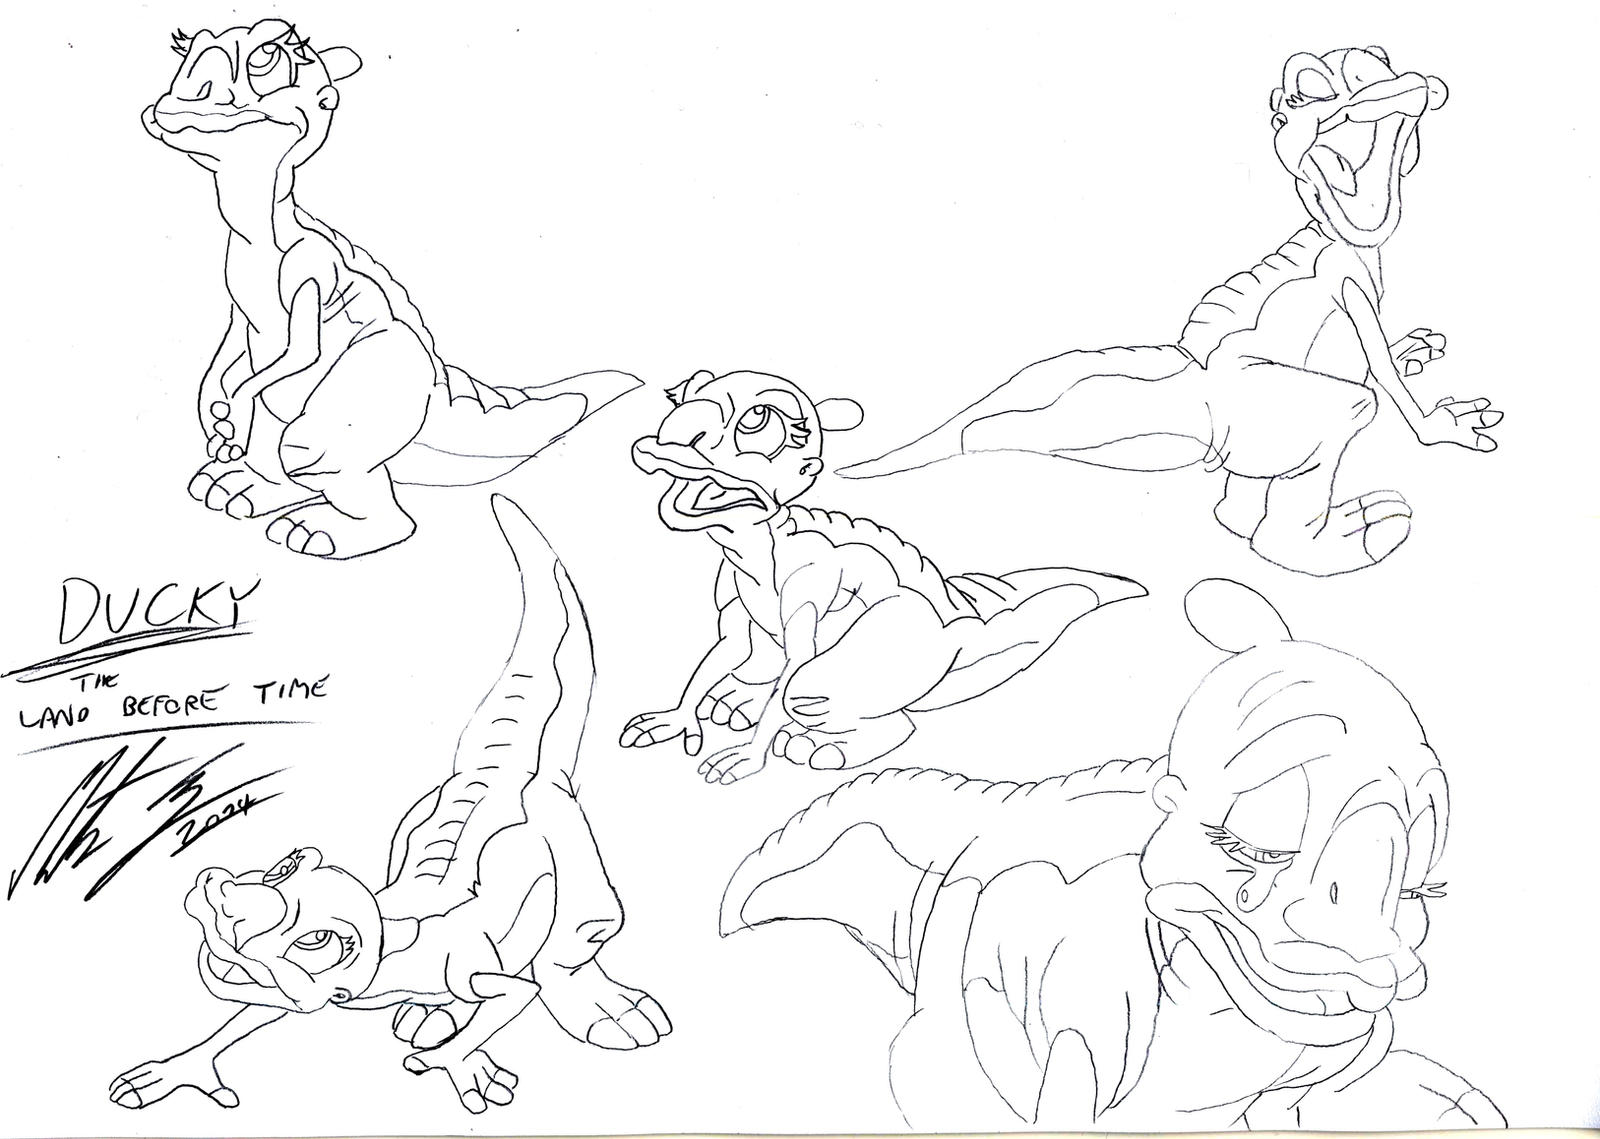 the land before time coloring pages - the land before time ducky by morteneng21 on deviantart